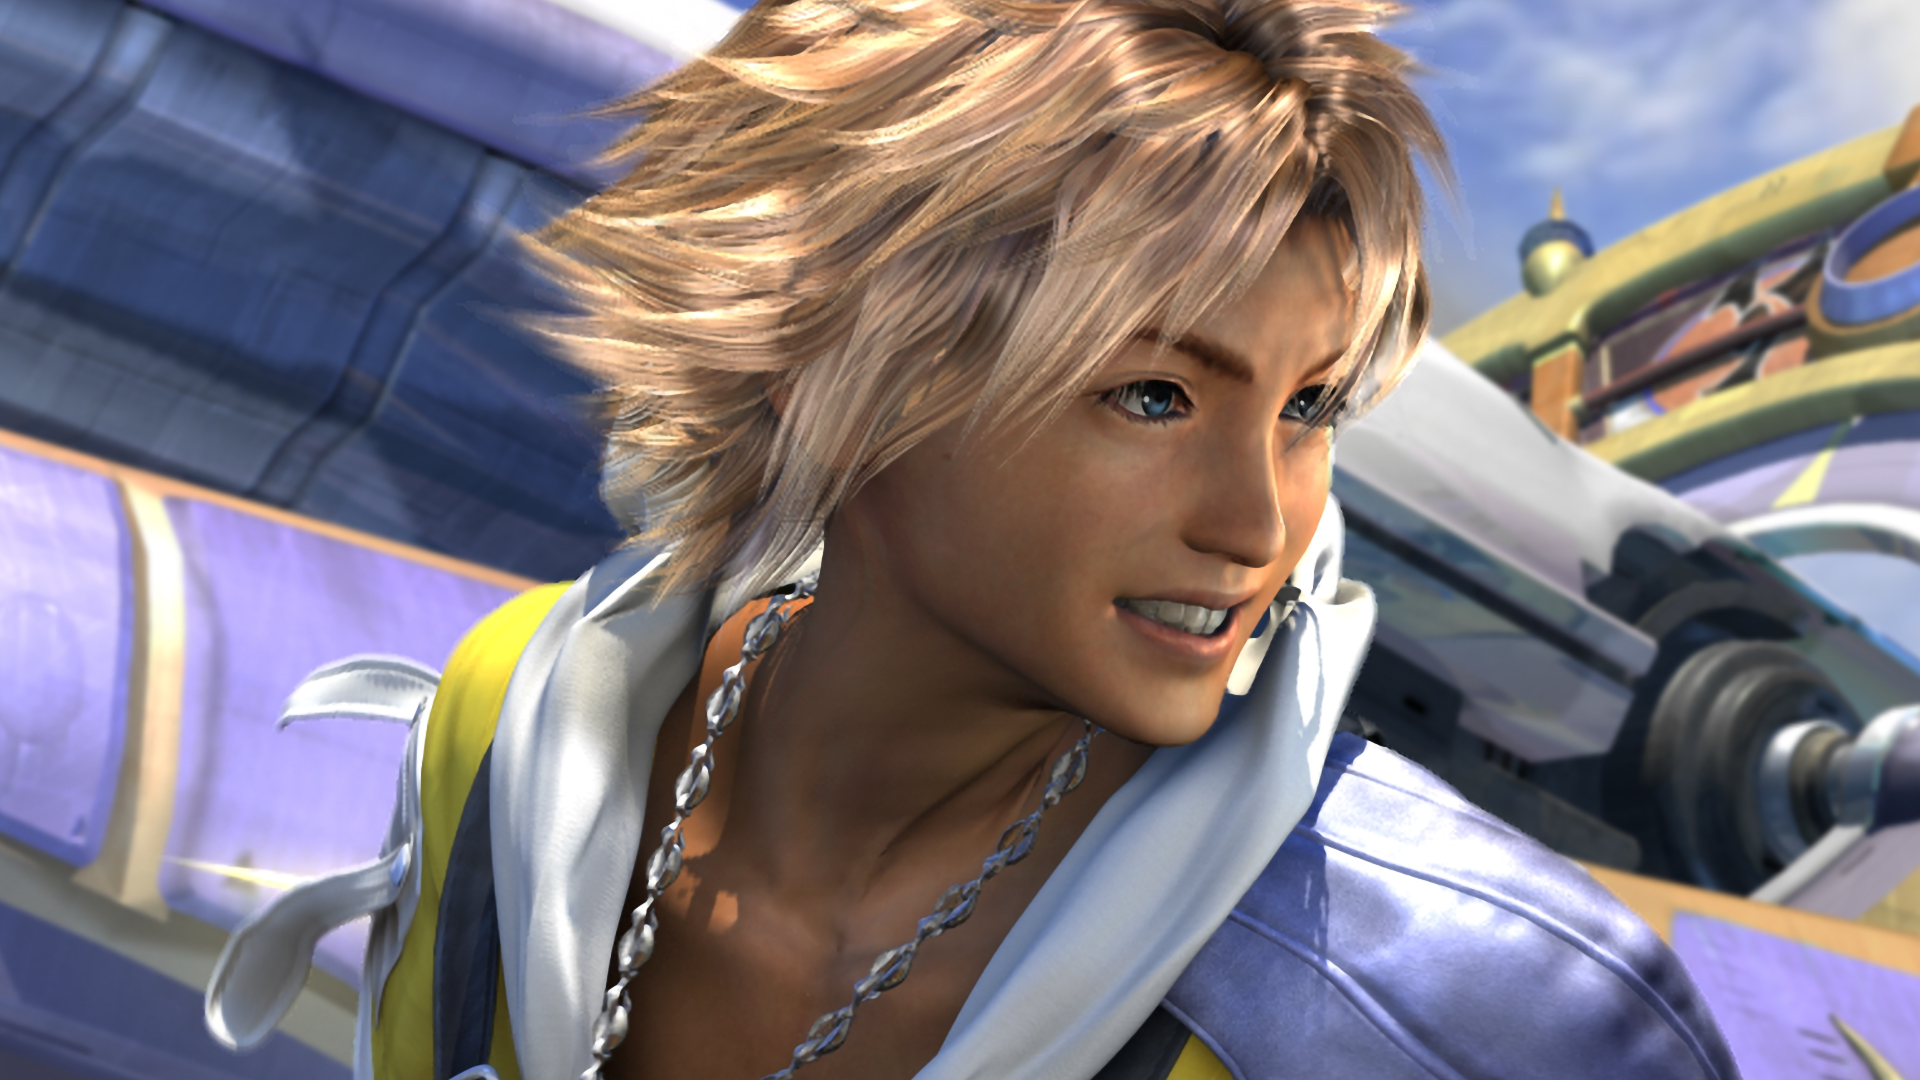 X X 2 Final Fantasy X X 2 Hd Remaster Information On Trophies Size